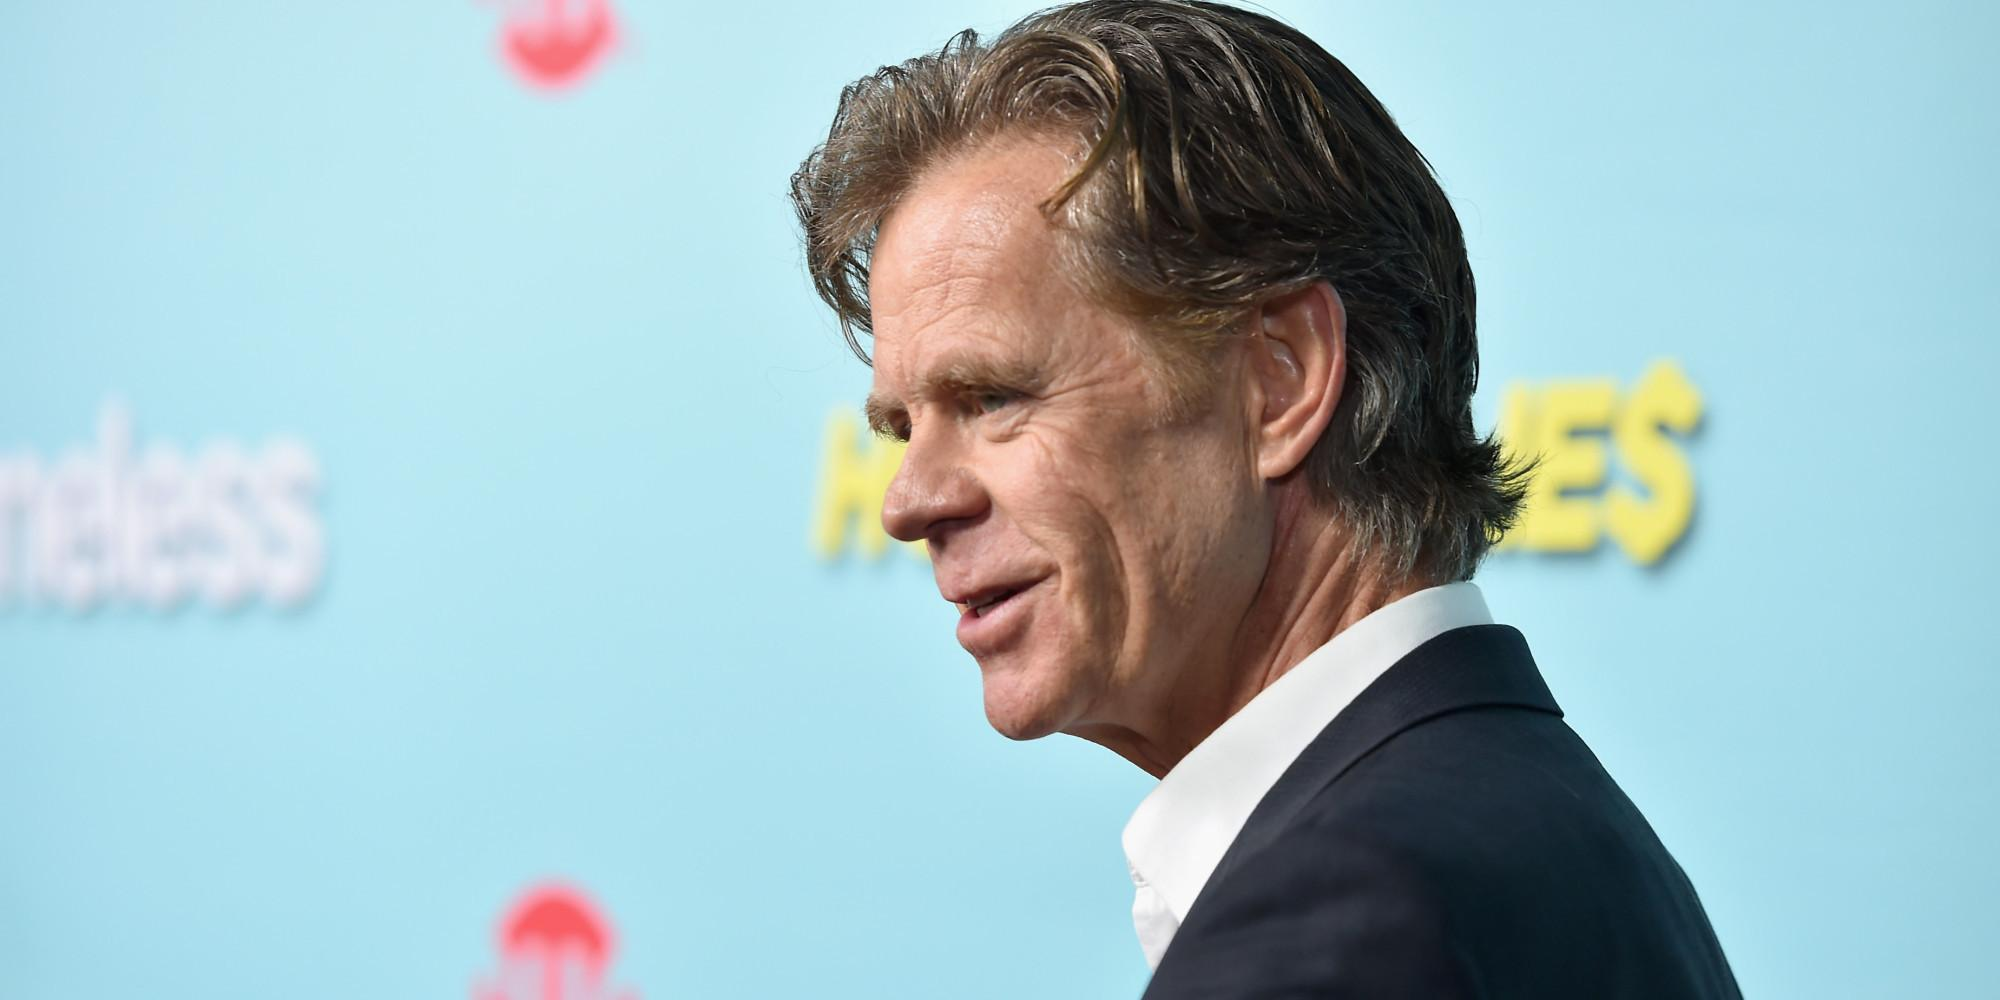 William H. Macy Wallpapers Image Photos Pictures Backgrounds